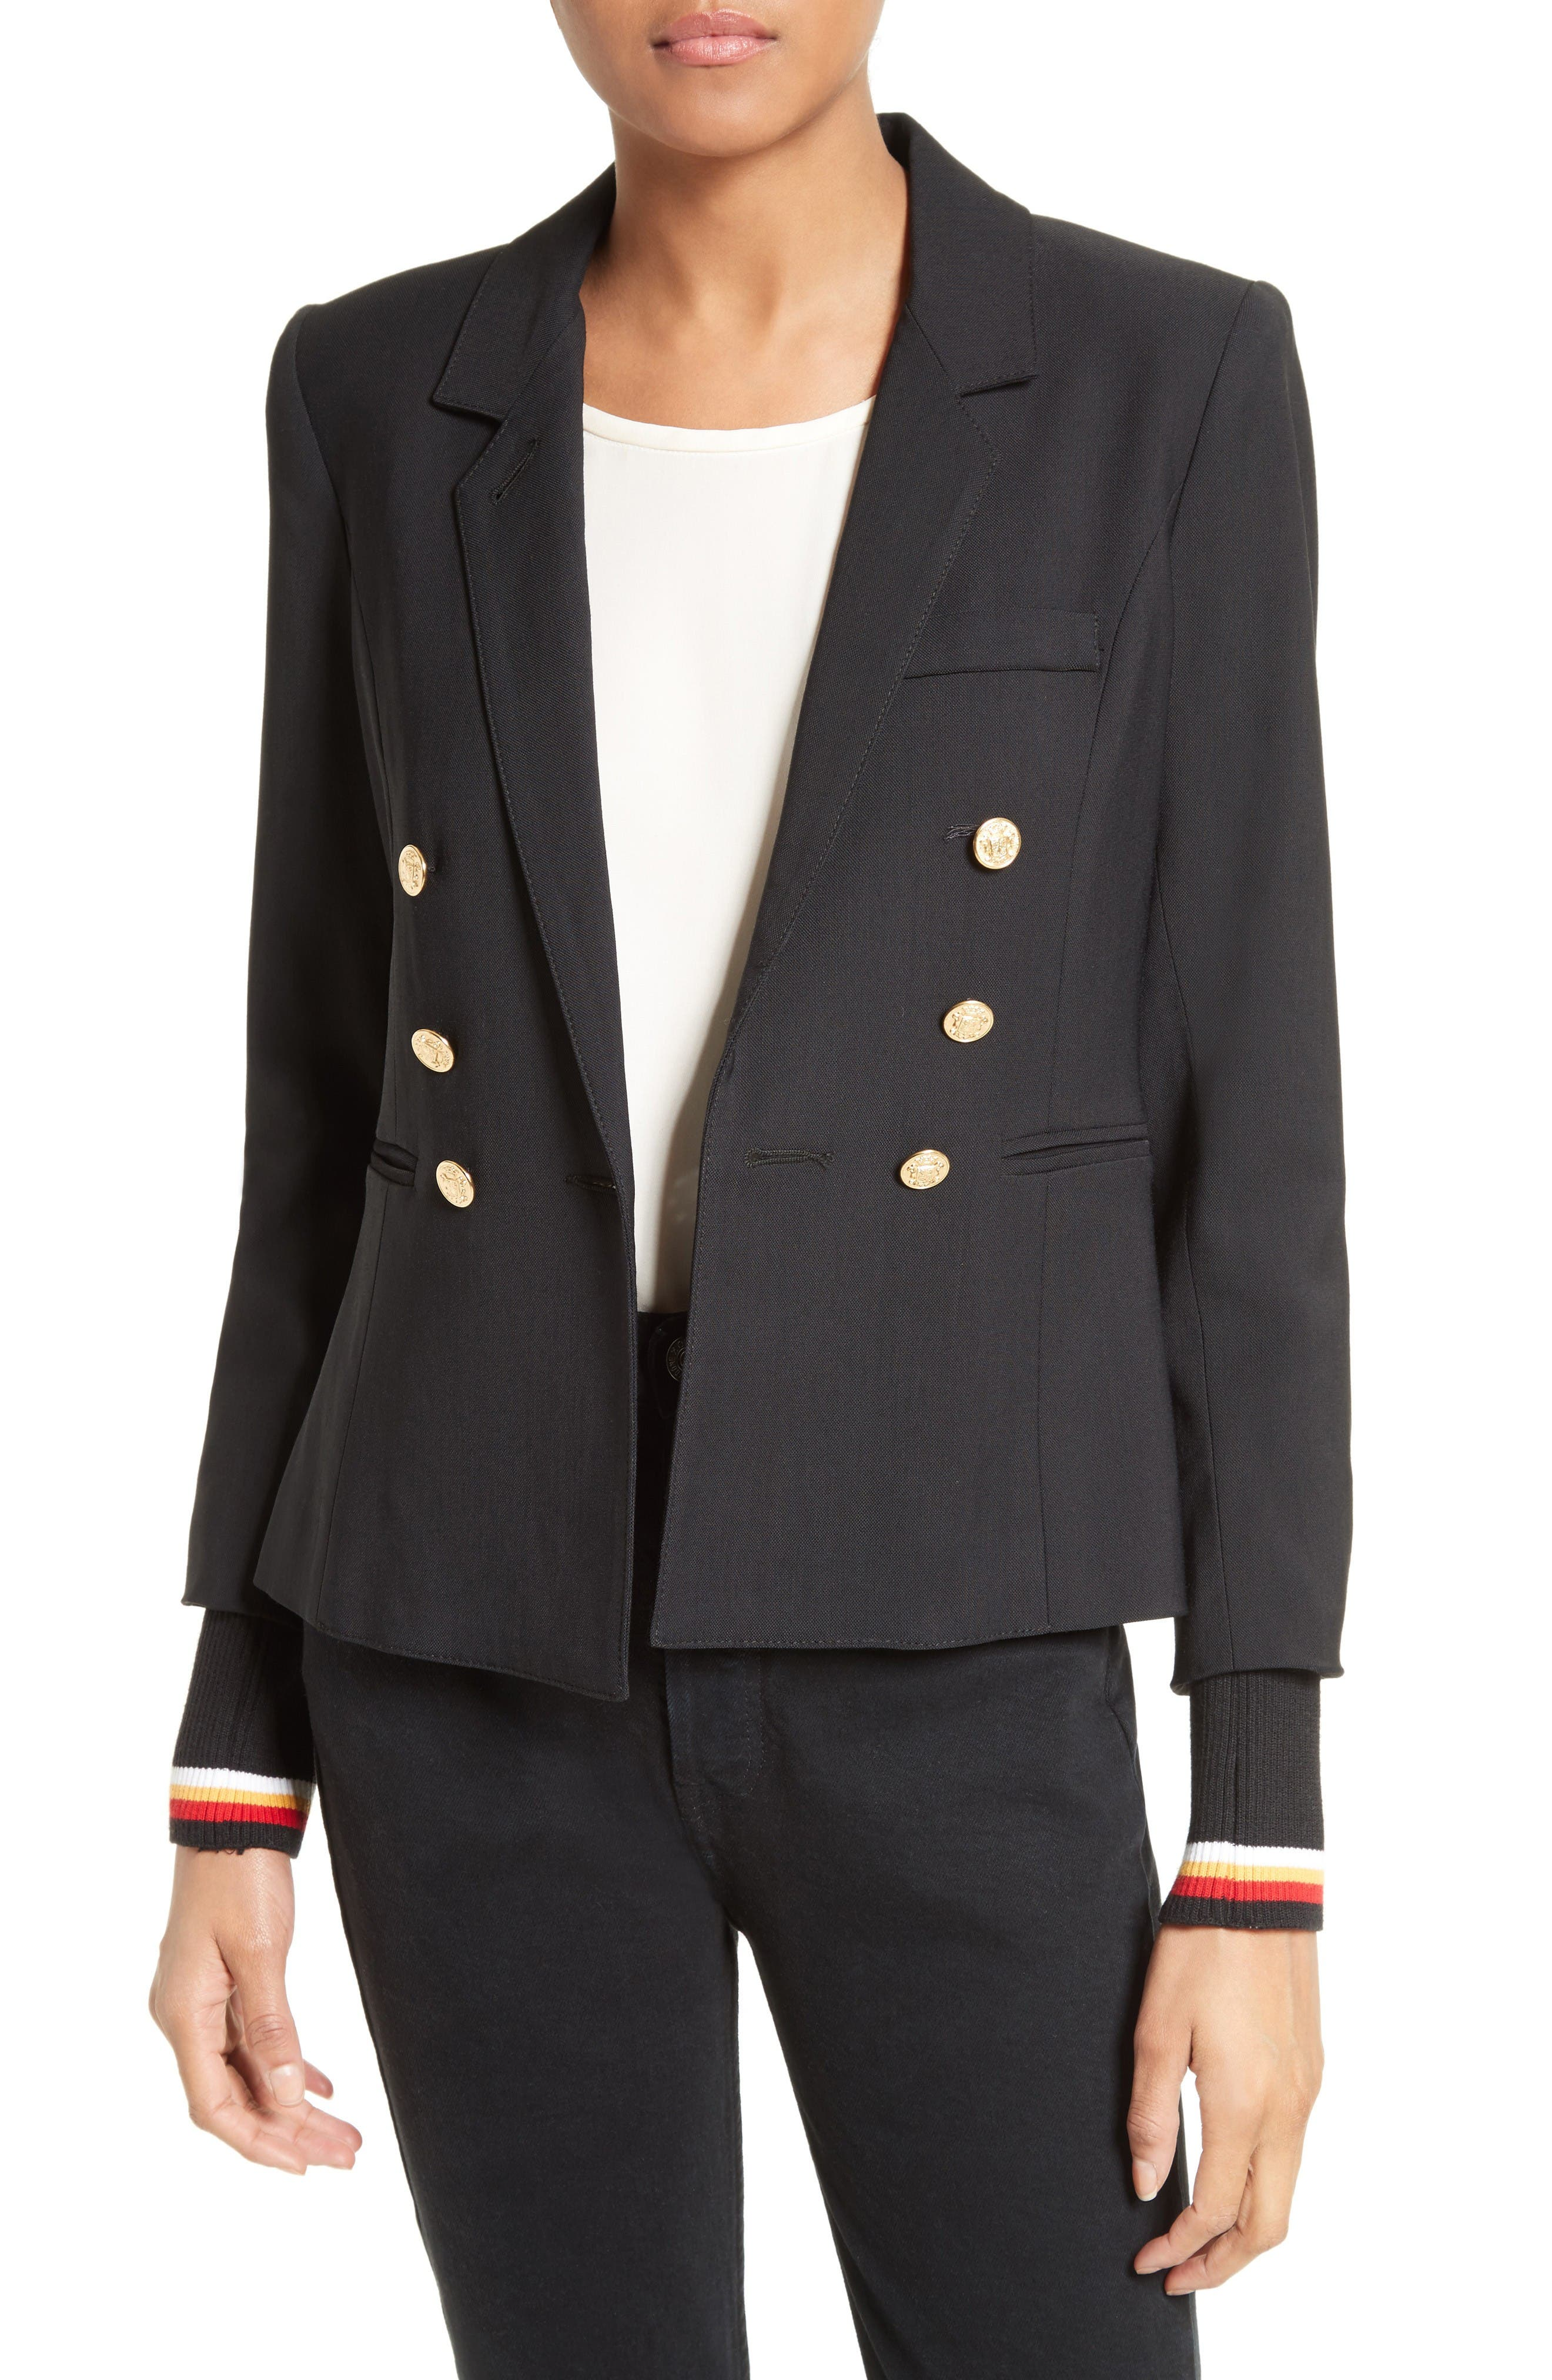 Smythe College Double Breasted Blazer with Detachable Knit Cuffs